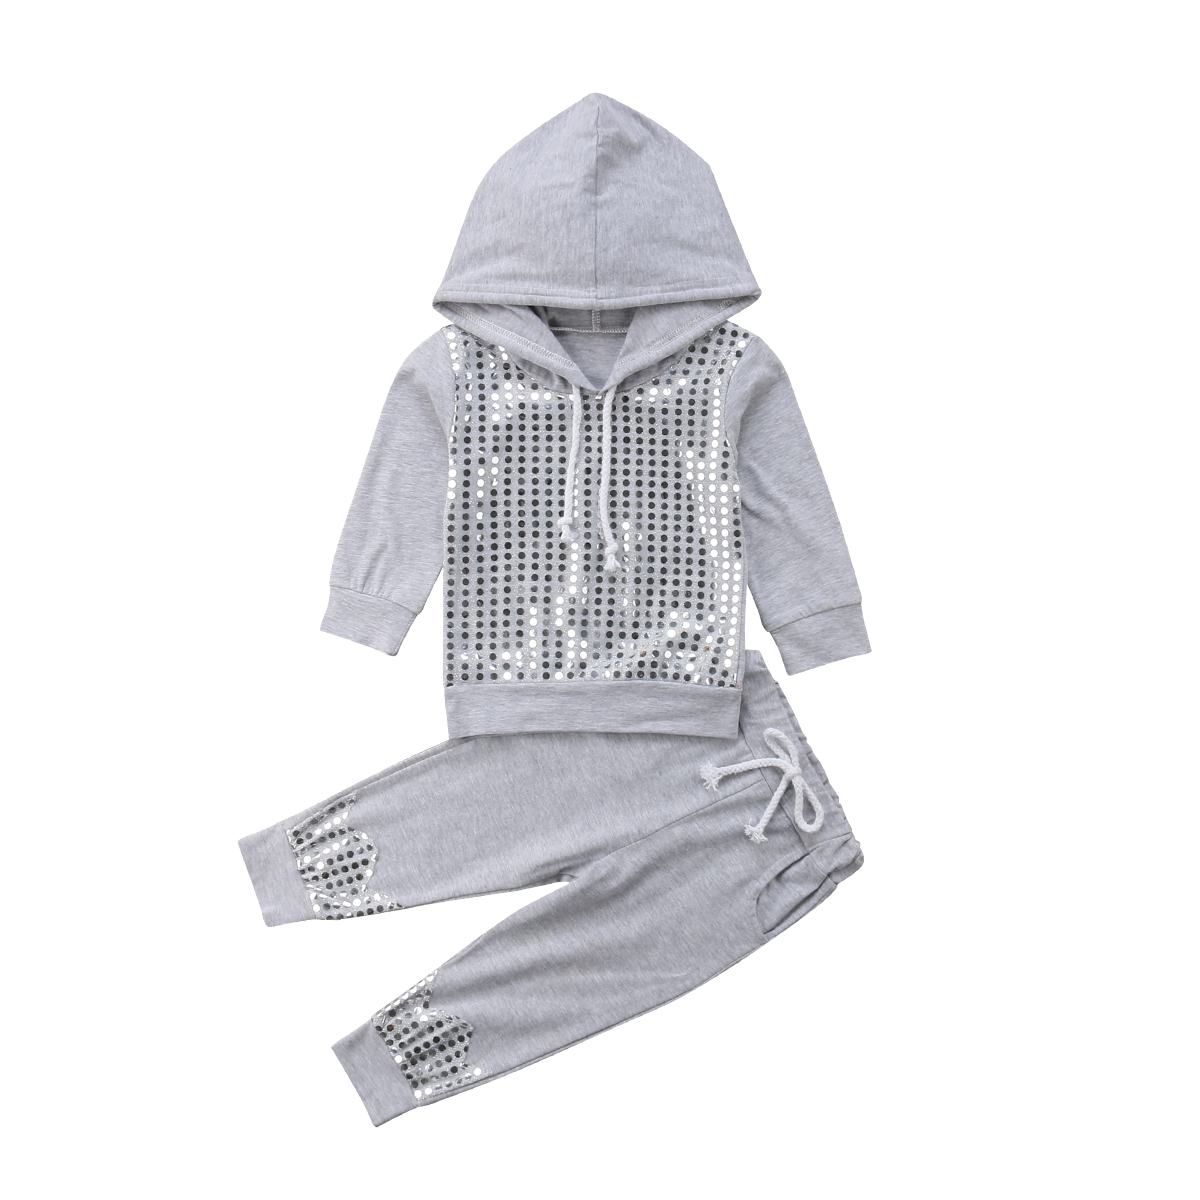 1-6Y Fashion Causal Autumn Winter Toddler Girls Clothes 2PCS Sequined Print Long Sleeve Hooded Pullover Sweatshirt Tops Pant